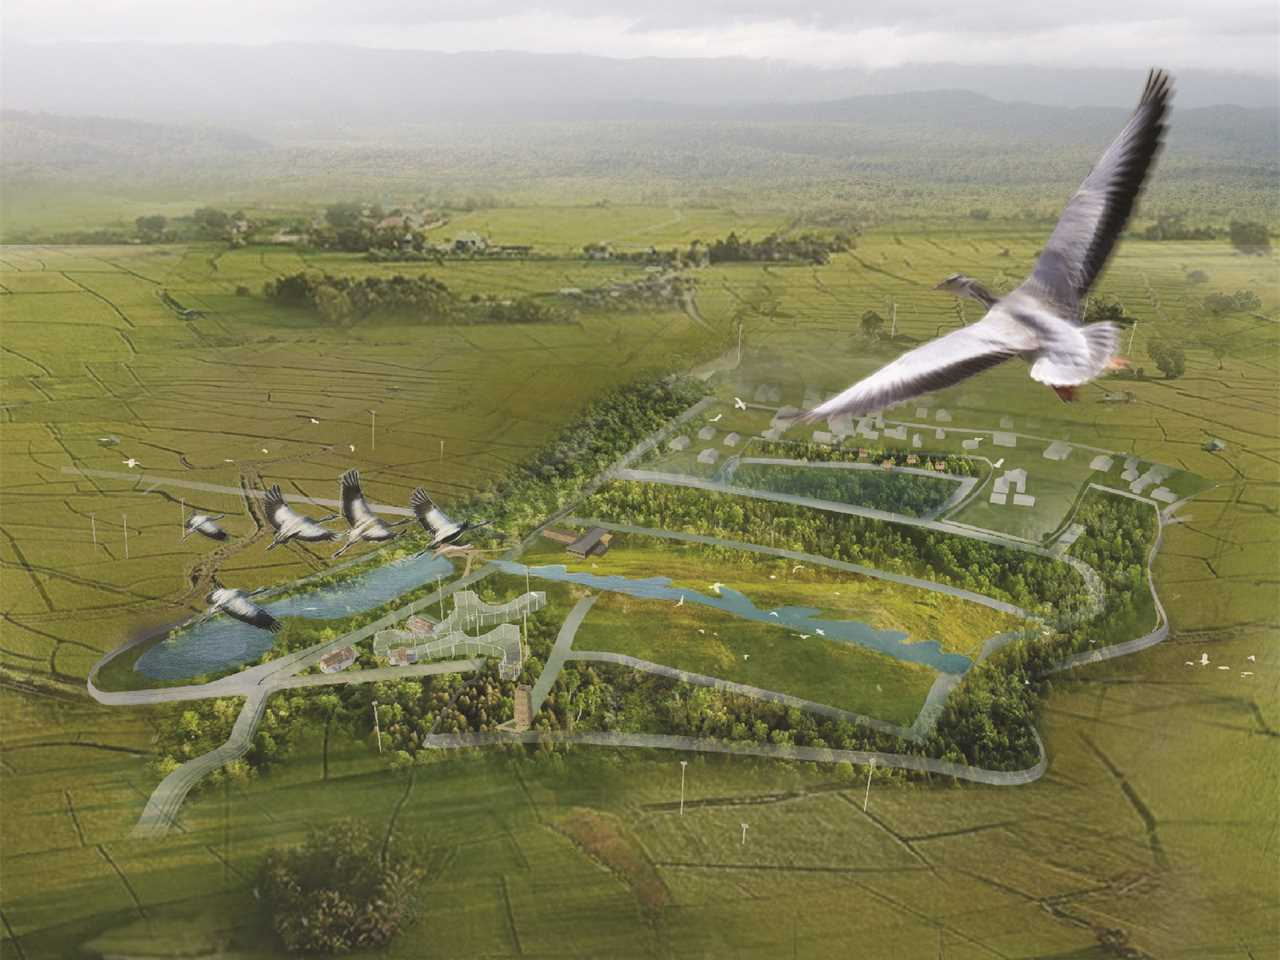 Global finalist entry 2015 - Protective Wing: Bird sanctuary